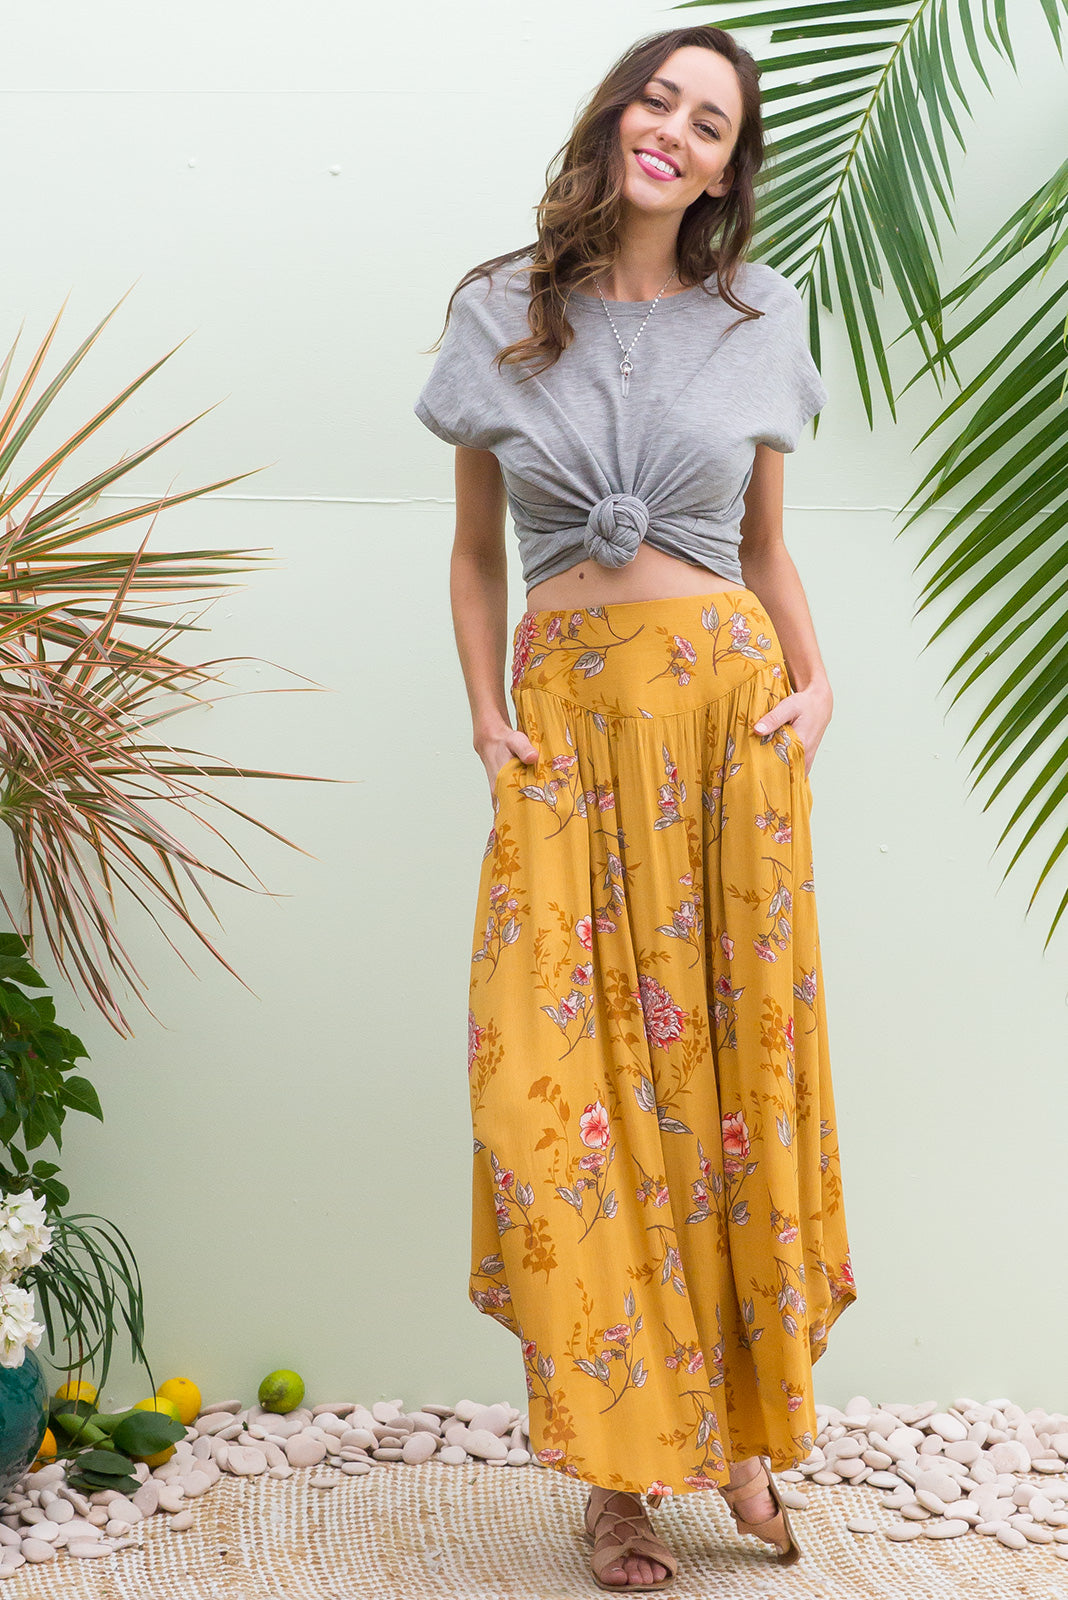 Laguna Golden Maxi Skirt with a soft ruched elastic back and pockets in rich golden yellow with a tonal floral bohemian vintage style print on crinkle rayo